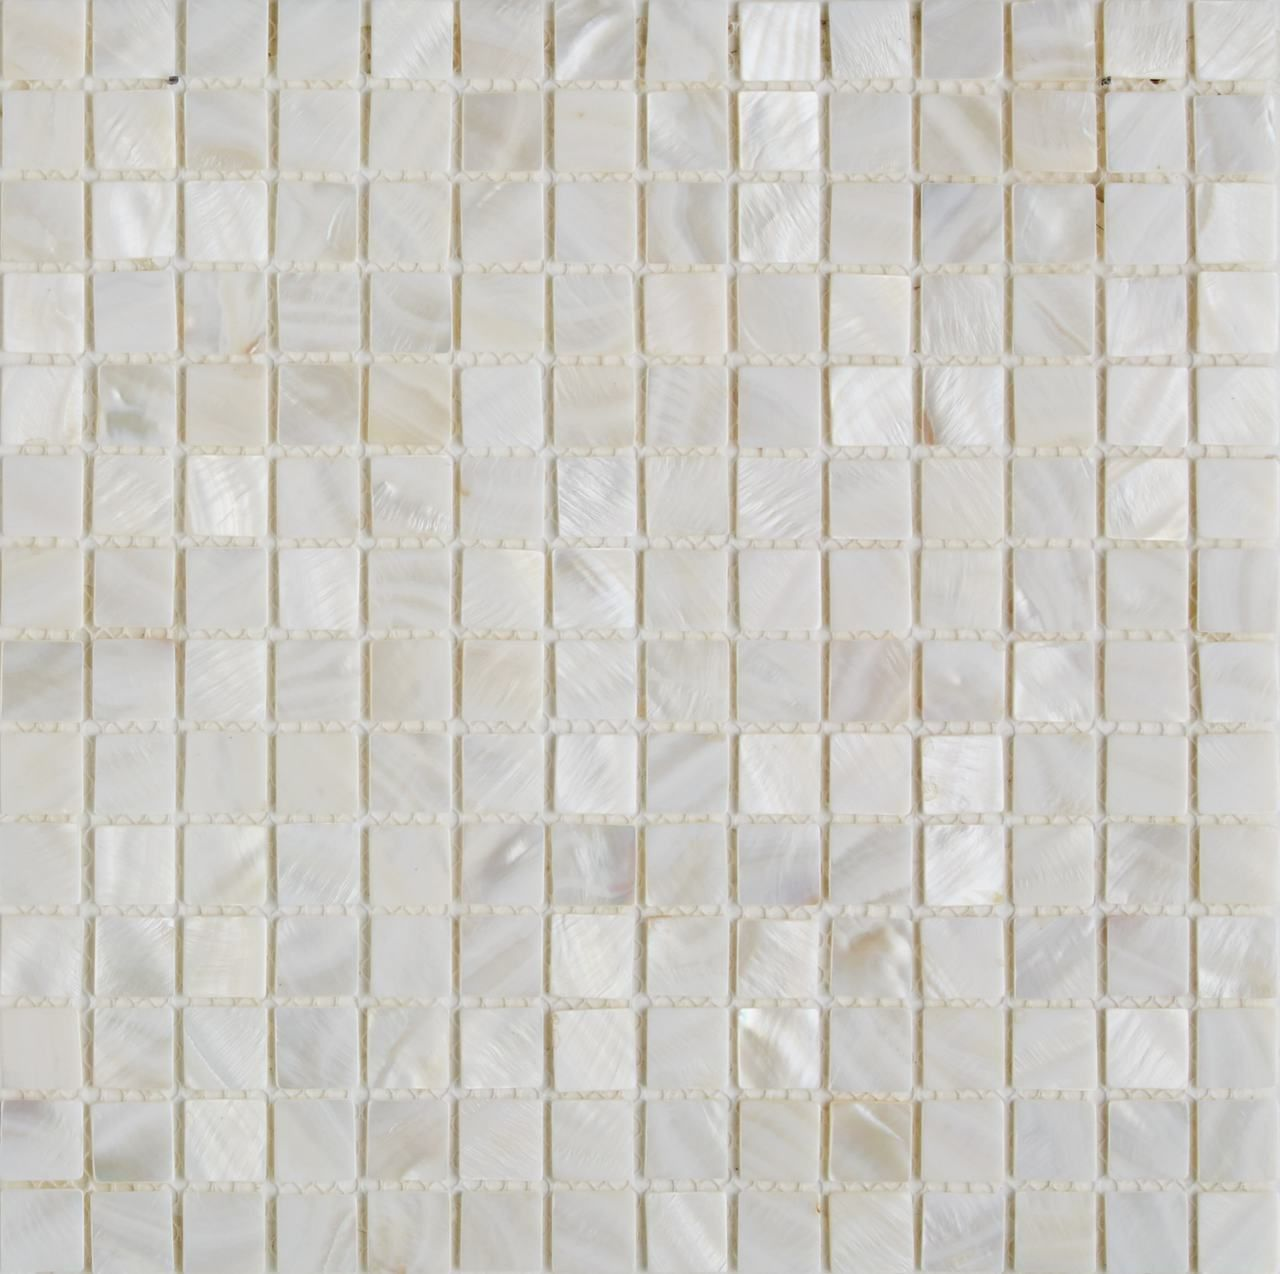 7 Seashell And Mother Of Pearl Tiles Ideas Mosaic Tiles Mosaic Pearl Tile